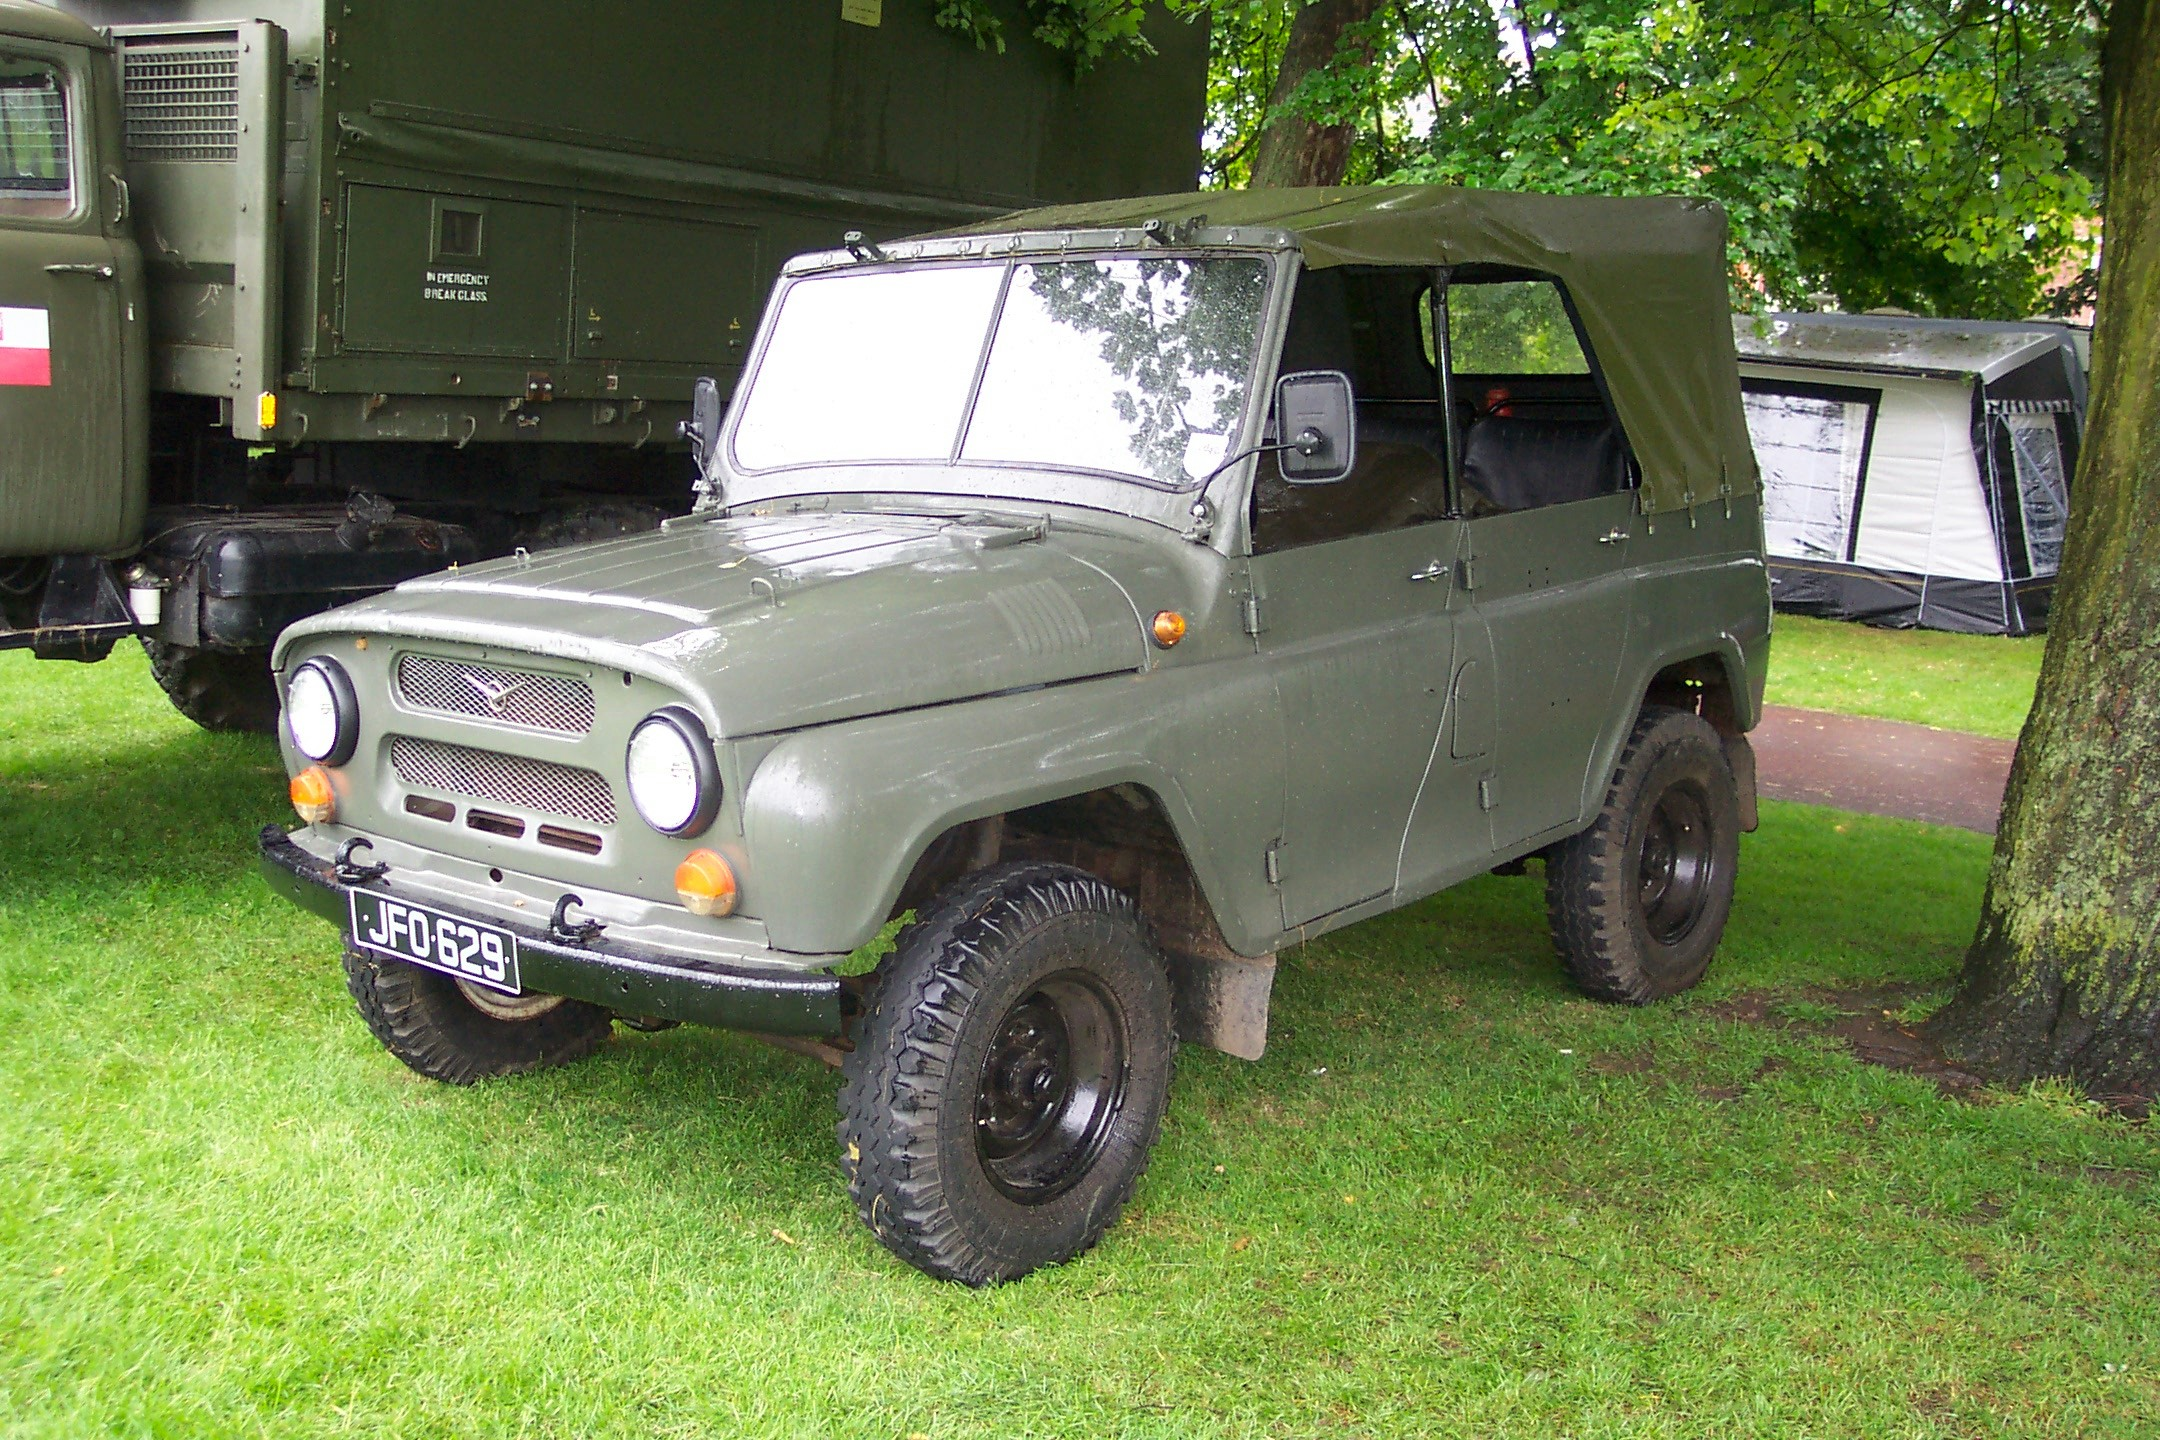 uaz uaz 469 photos news reviews specs car listings. Black Bedroom Furniture Sets. Home Design Ideas